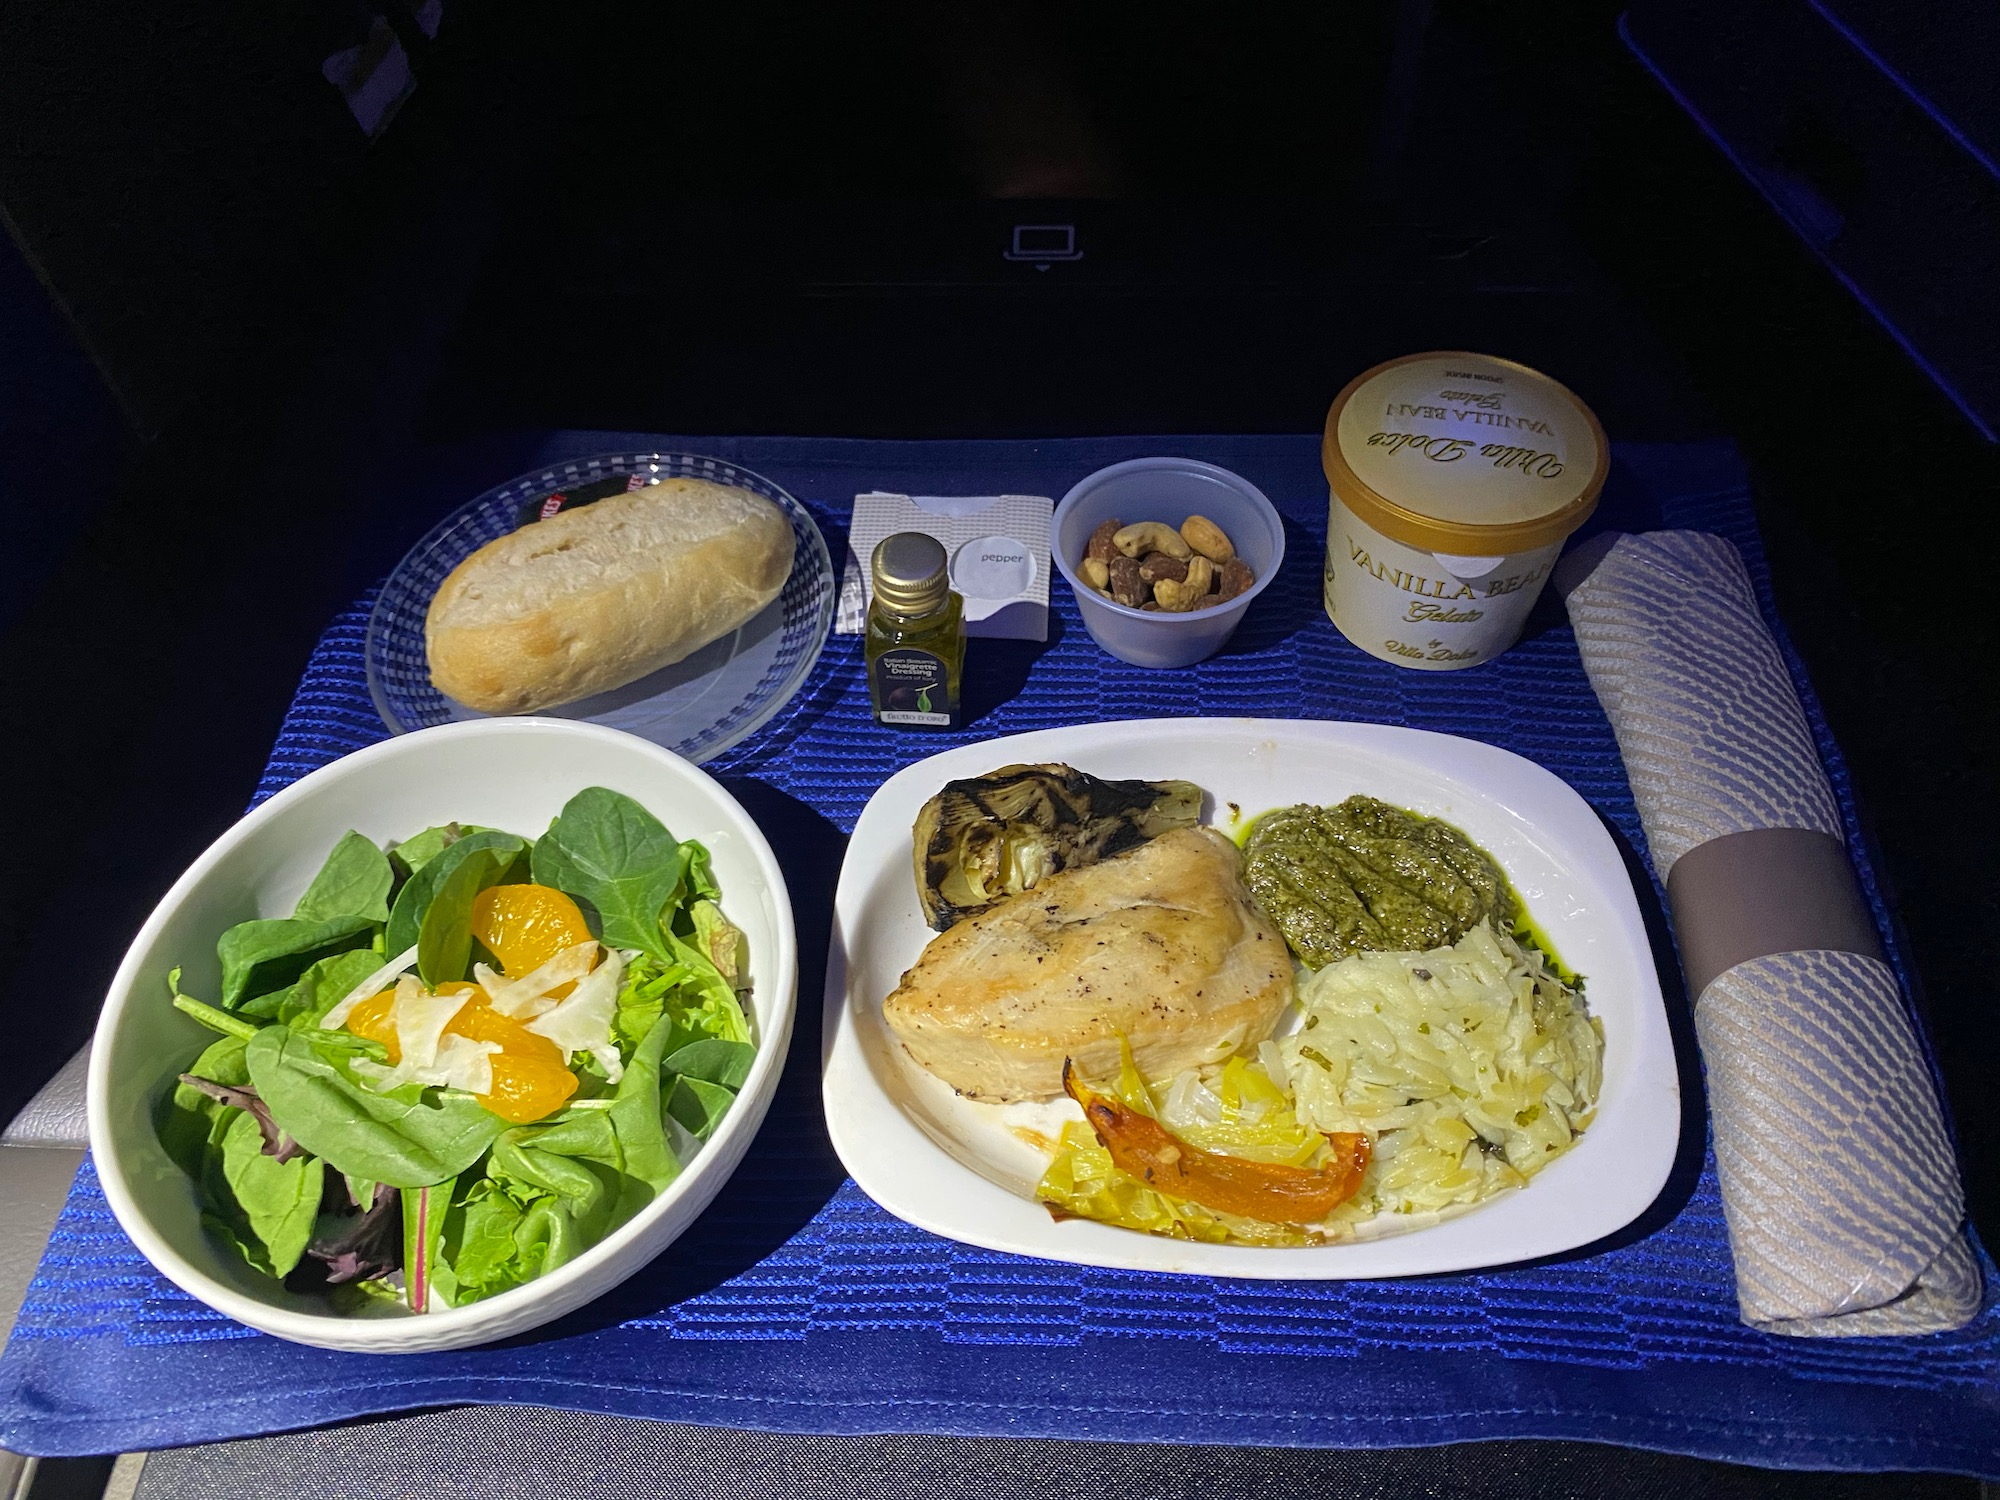 United Airlines Domestic First Class Meal Return